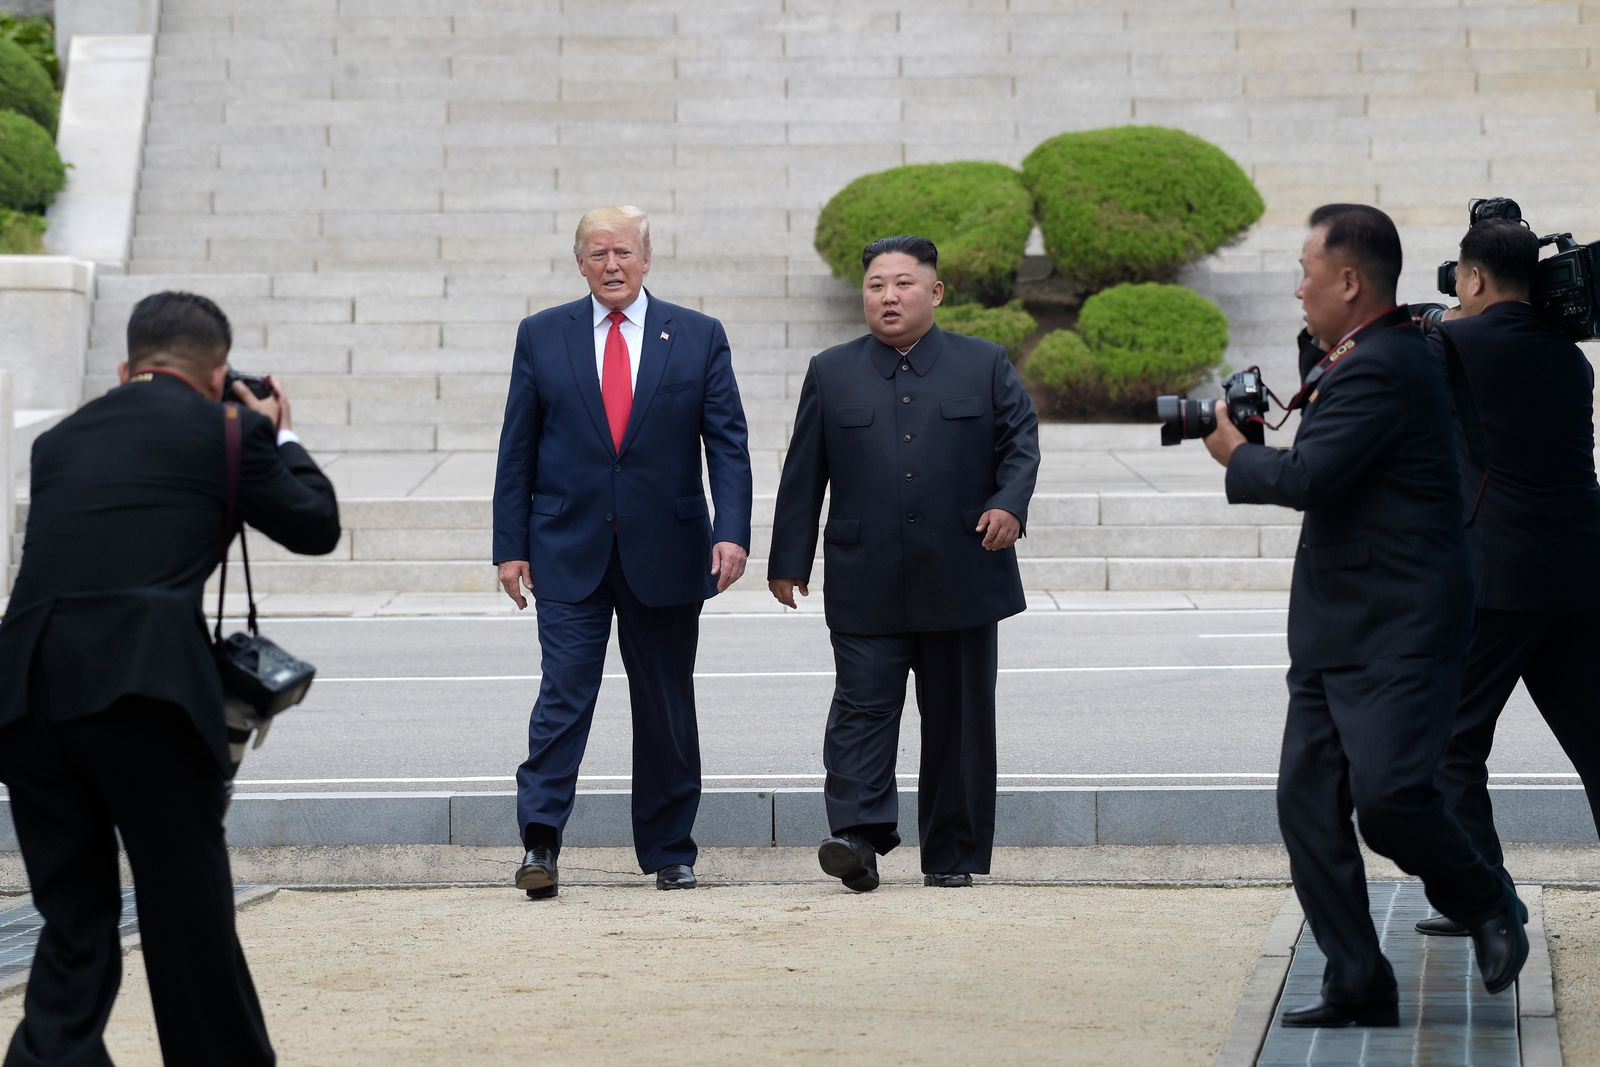 FILE - In this June 30, 2019, file photo, President Donald Trump, center left, and North Korean leader Kim Jong Un walk on the North Korean side at the border village of Panmunjom in the Demilitarized Zone. (AP Photo/Susan Walsh, File)